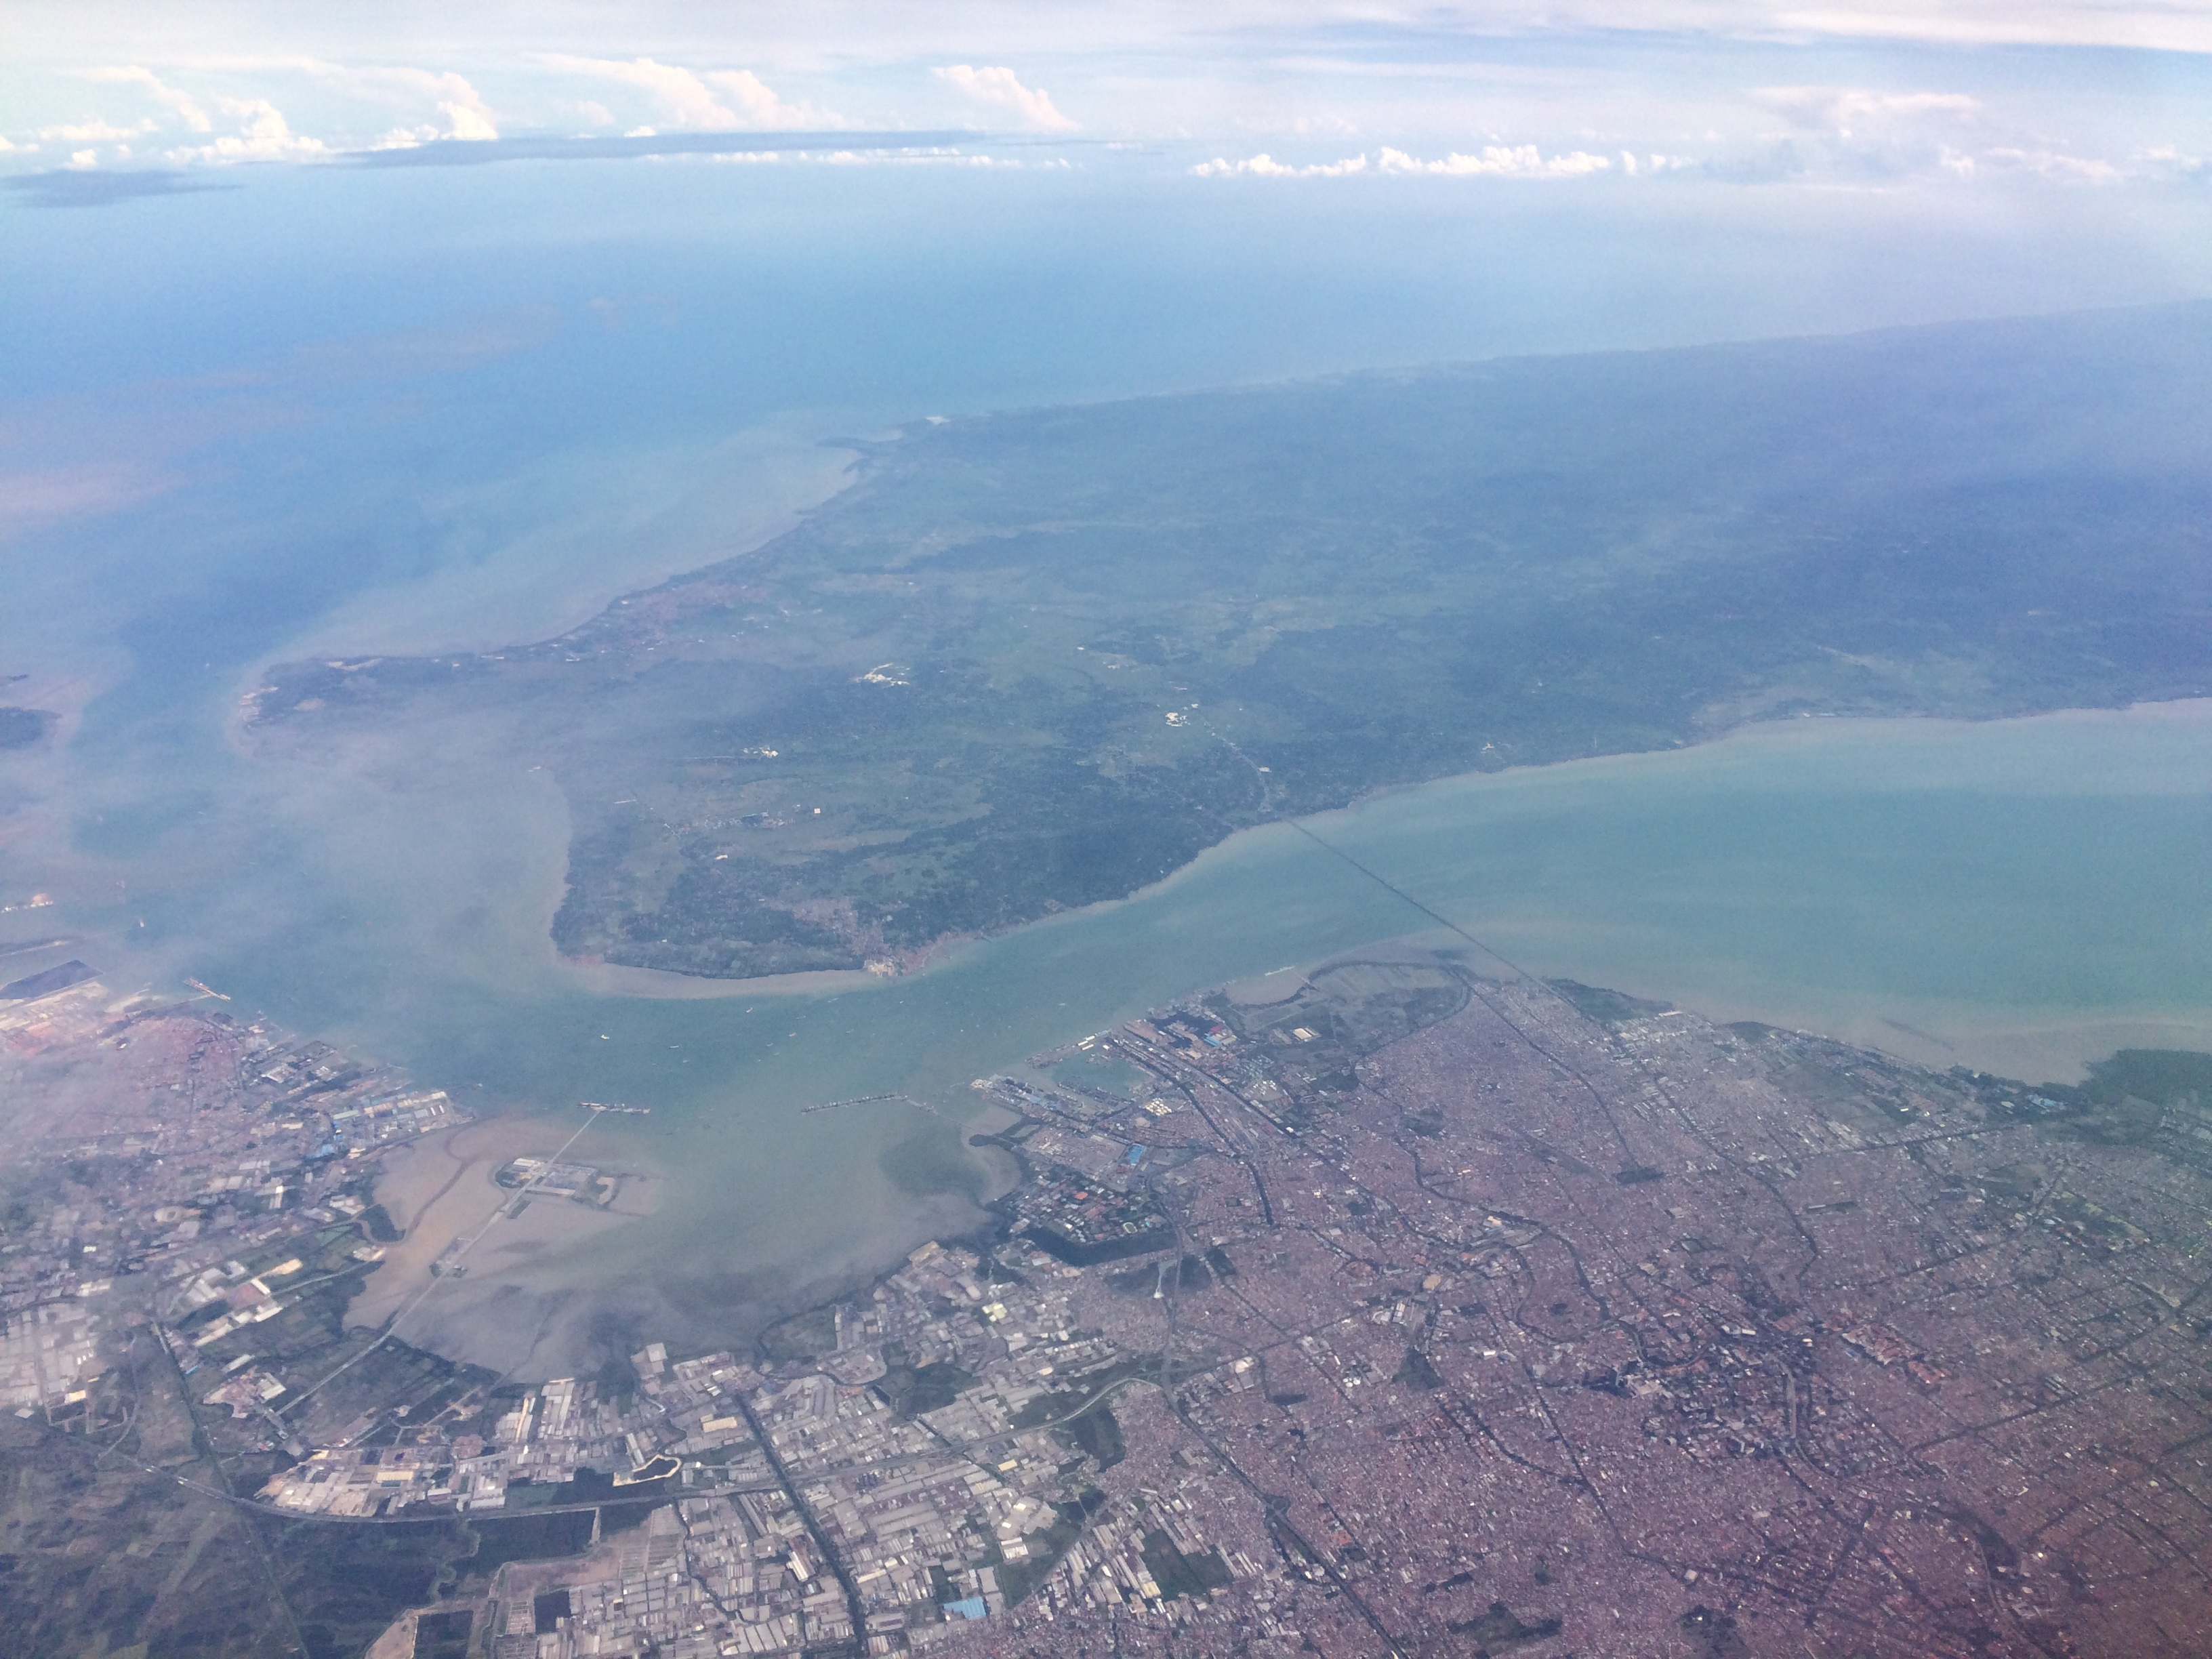 Seen from an airplane, a cityscape with a green island to the north